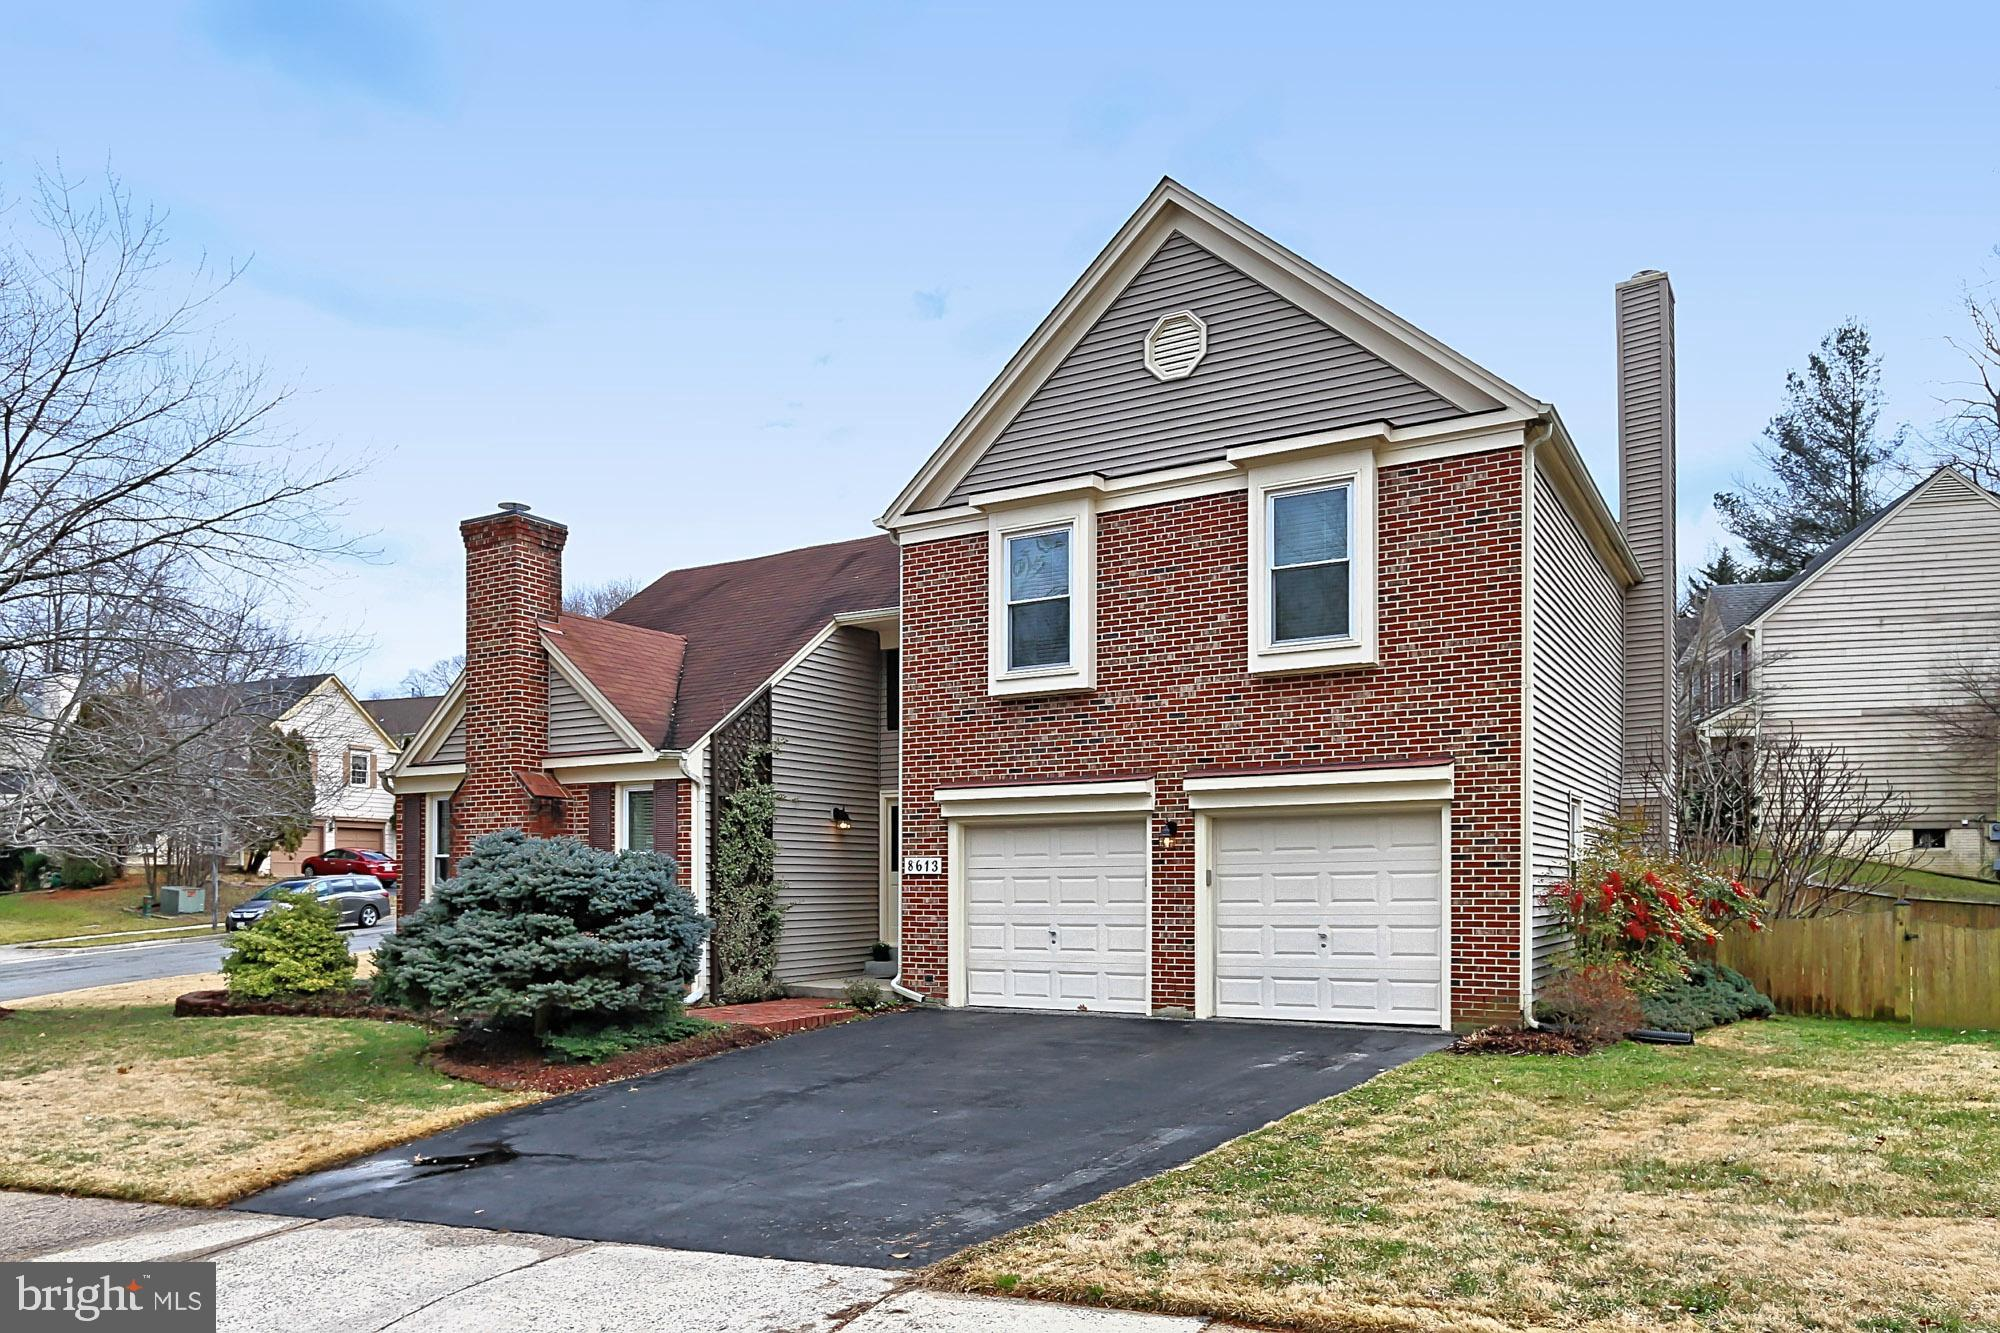 The flower gardens are almost ready to bloom! You could be in this home by spring! Beautifully maintained and updated colonial in the Afton Glen subdivision of Springfield. This 4 bedroom, 2 and 1 half bath is just waiting for you to call home. Pride of ownership is clearly visible.